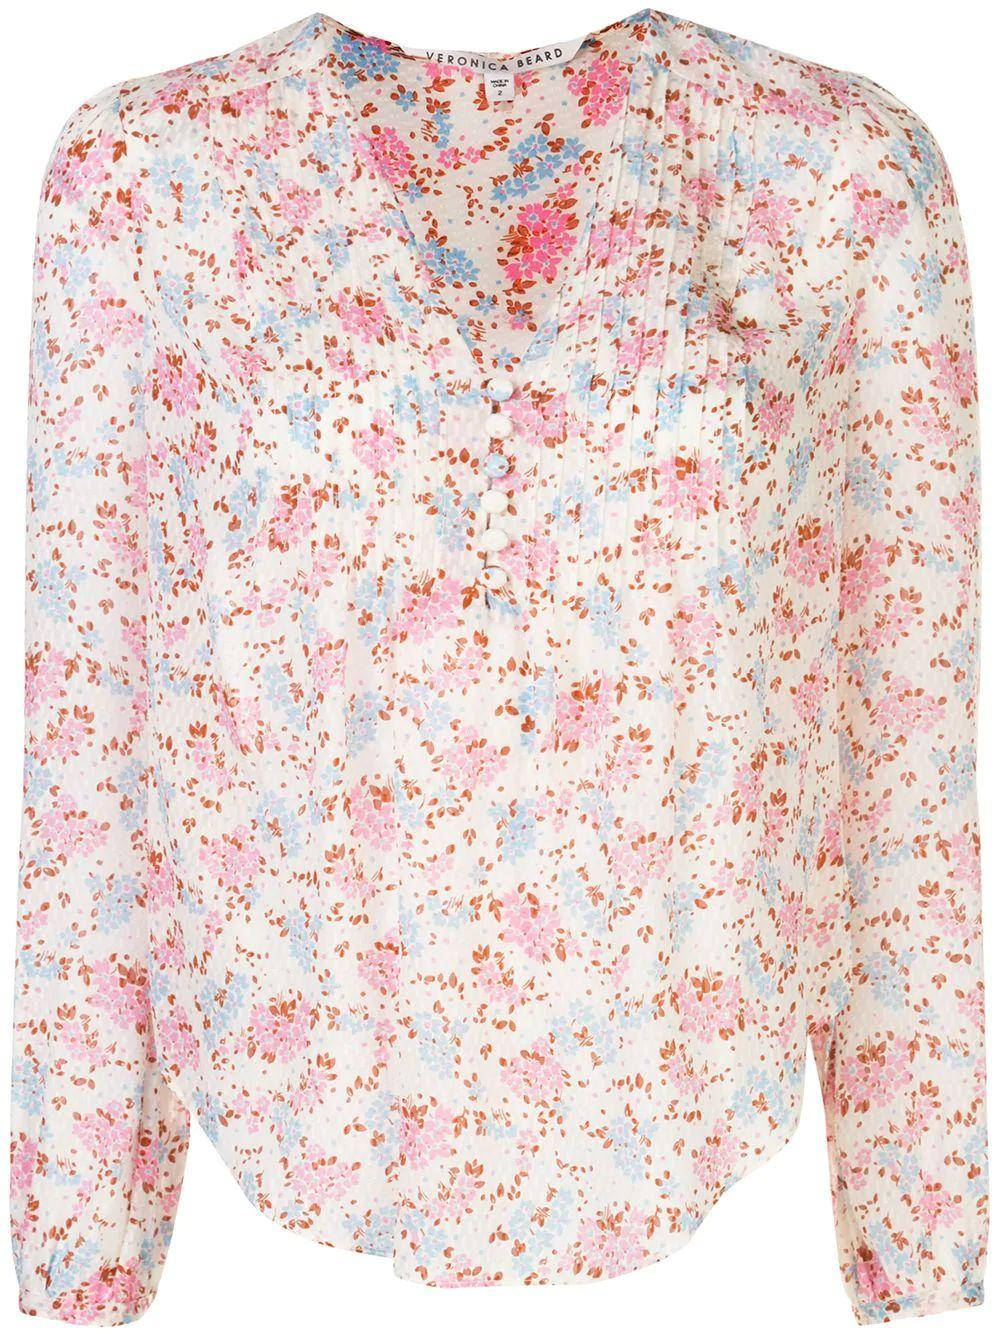 Lowell Blouse Item # 2002NP0114746